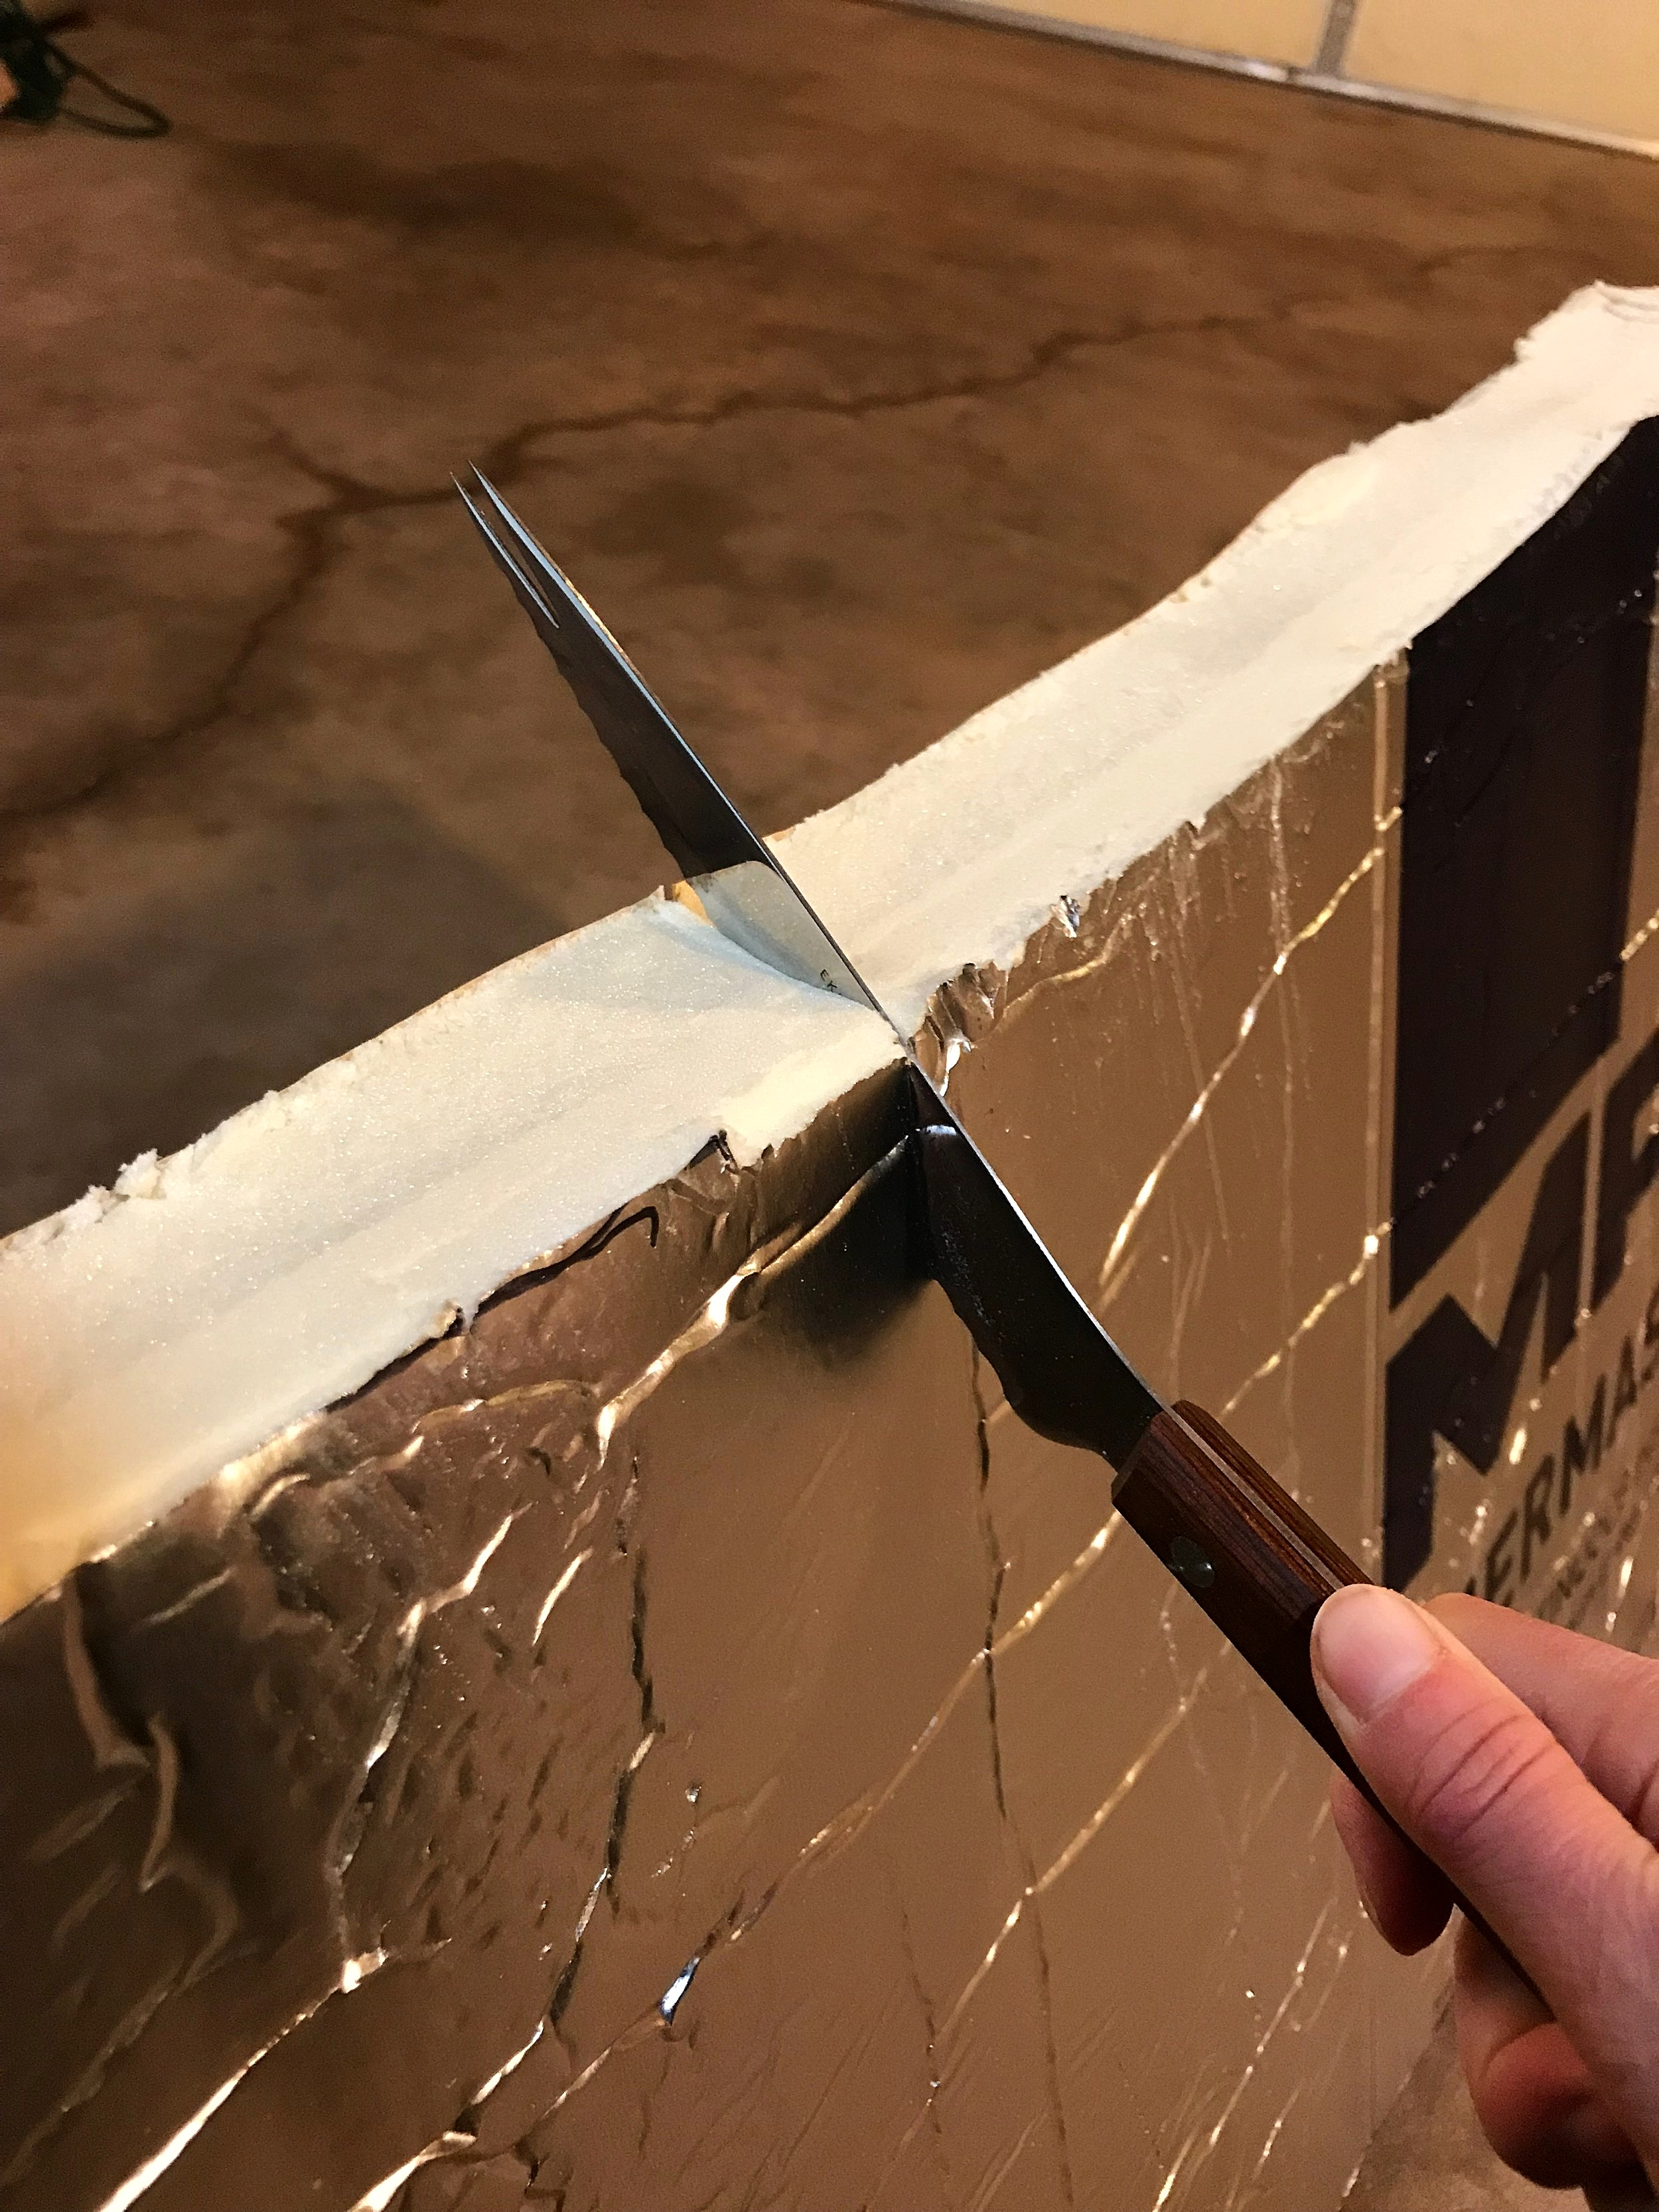 We used this old tomato knife and a larger bread knife to cut the polyiso insulation.